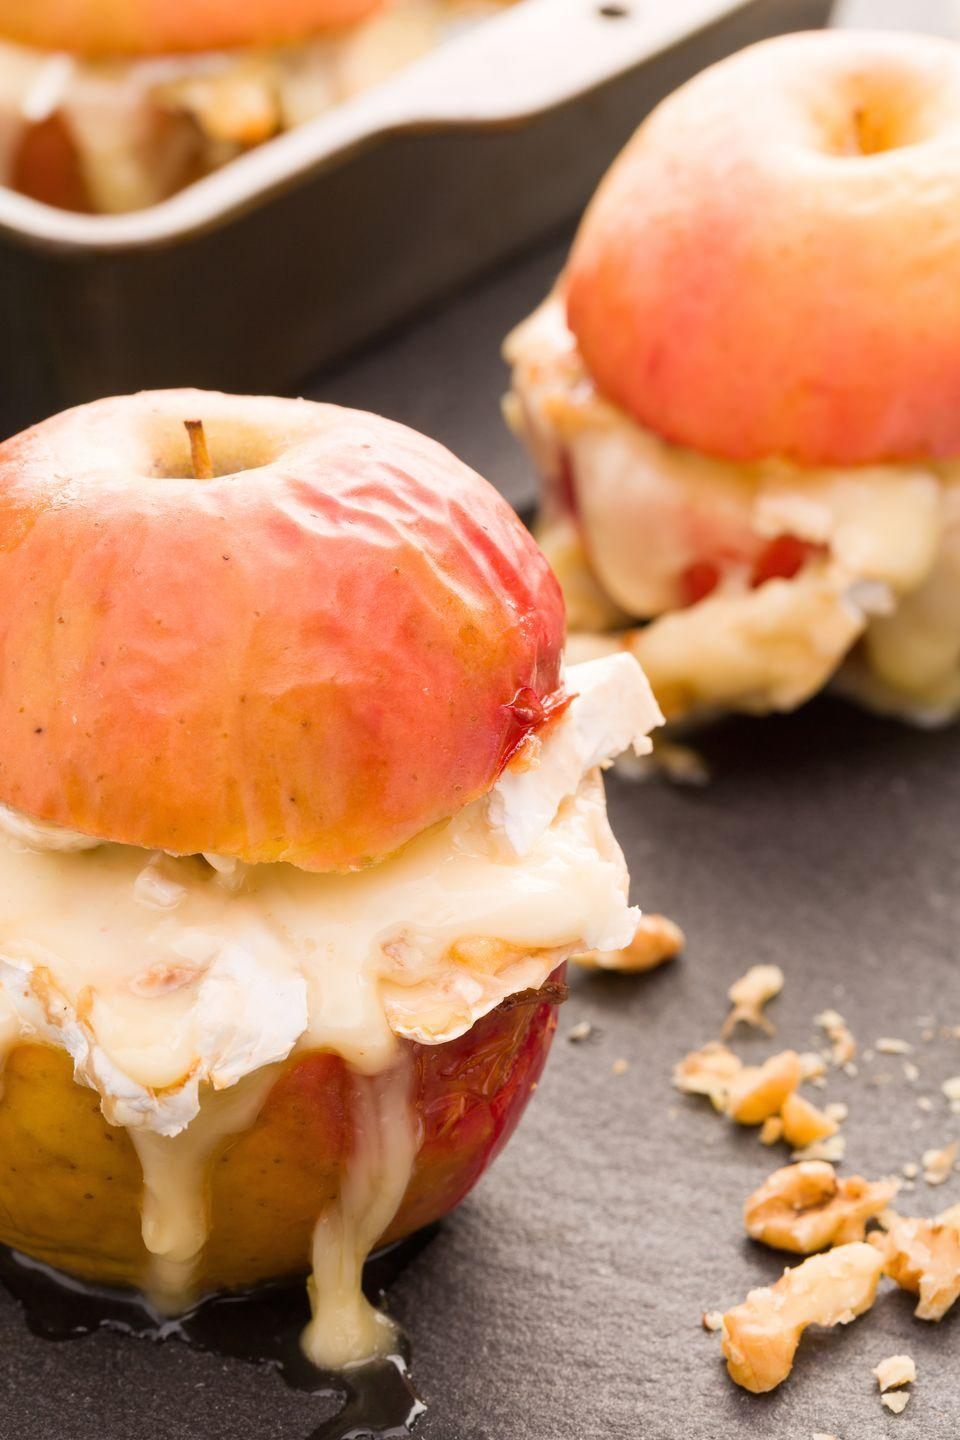 "<p>Take some of your favorite ingredients from a cheese plate—brie, honey, and apples—and turn them into a baked snack or dessert.</p><p>Get the recipe from <a href=""https://www.delish.com/cooking/recipe-ideas/recipes/a43871/baked-apple-with-brie-and-honey-recipe/"" rel=""nofollow noopener"" target=""_blank"" data-ylk=""slk:Delish"" class=""link rapid-noclick-resp"">Delish</a>.</p>"